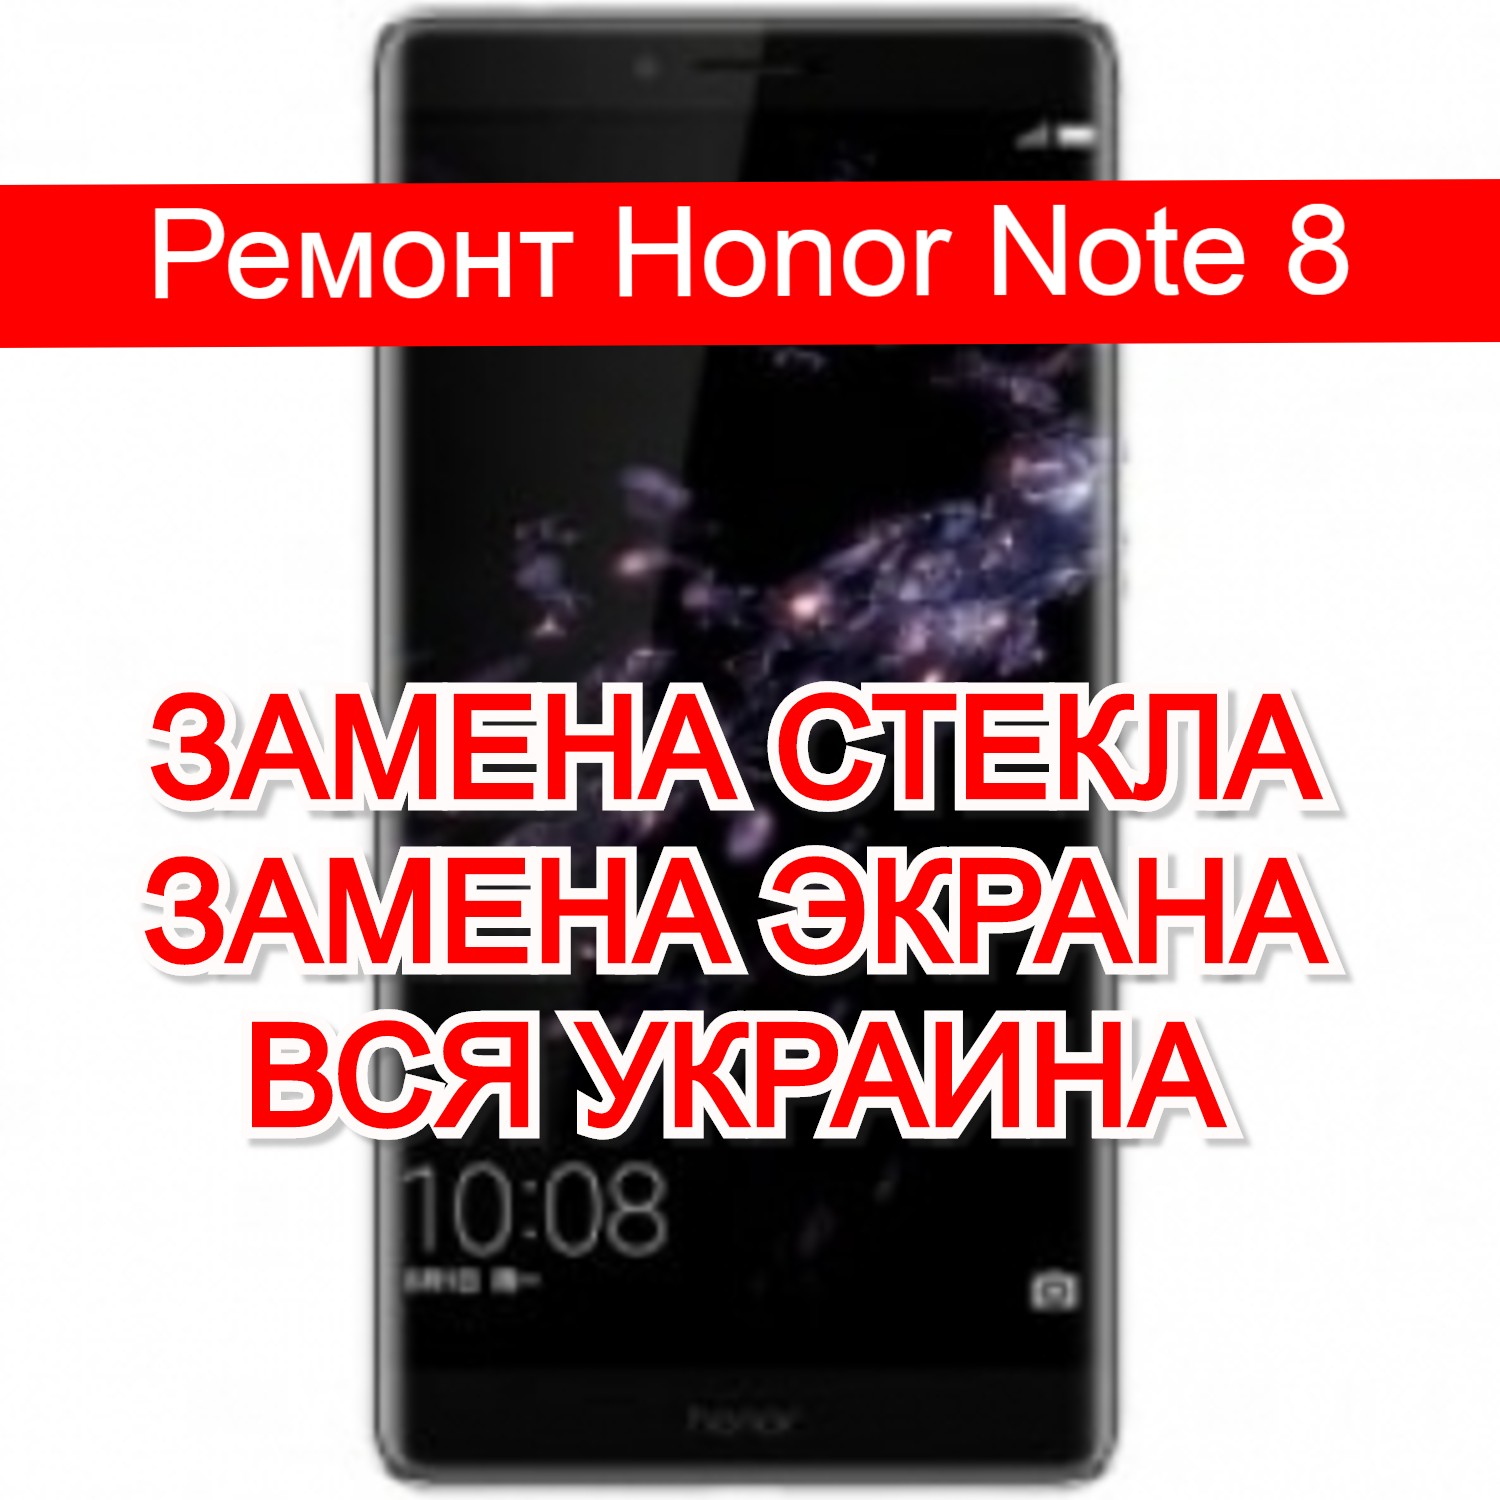 ремонт Honor Note 8 замена стекла и экрана